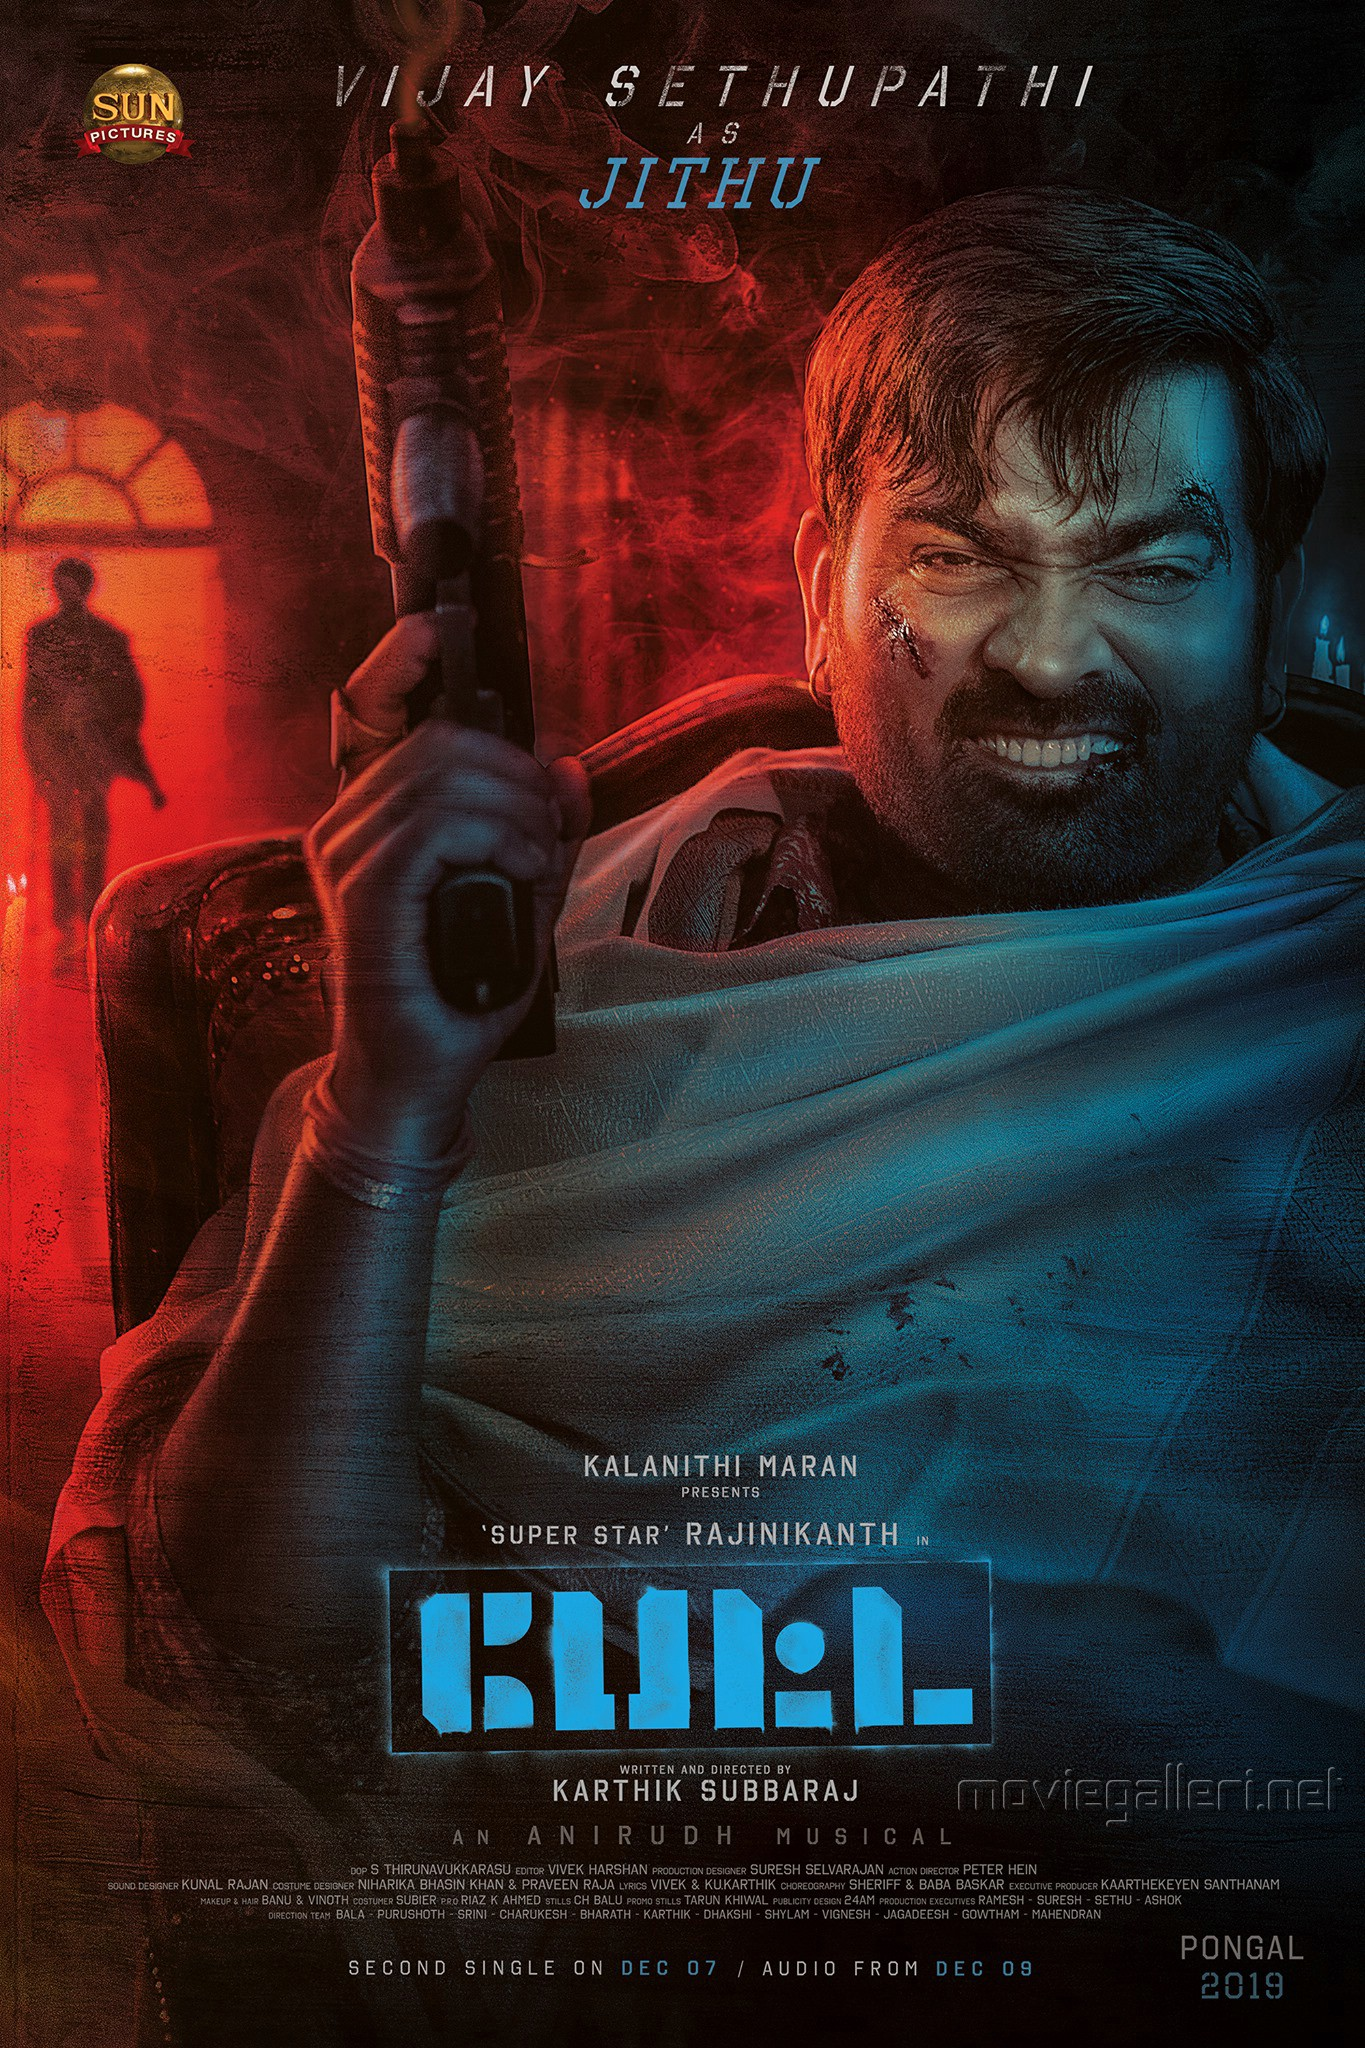 Actor Vijay Sethupathi as Jithu in Petta Movie Poster HD